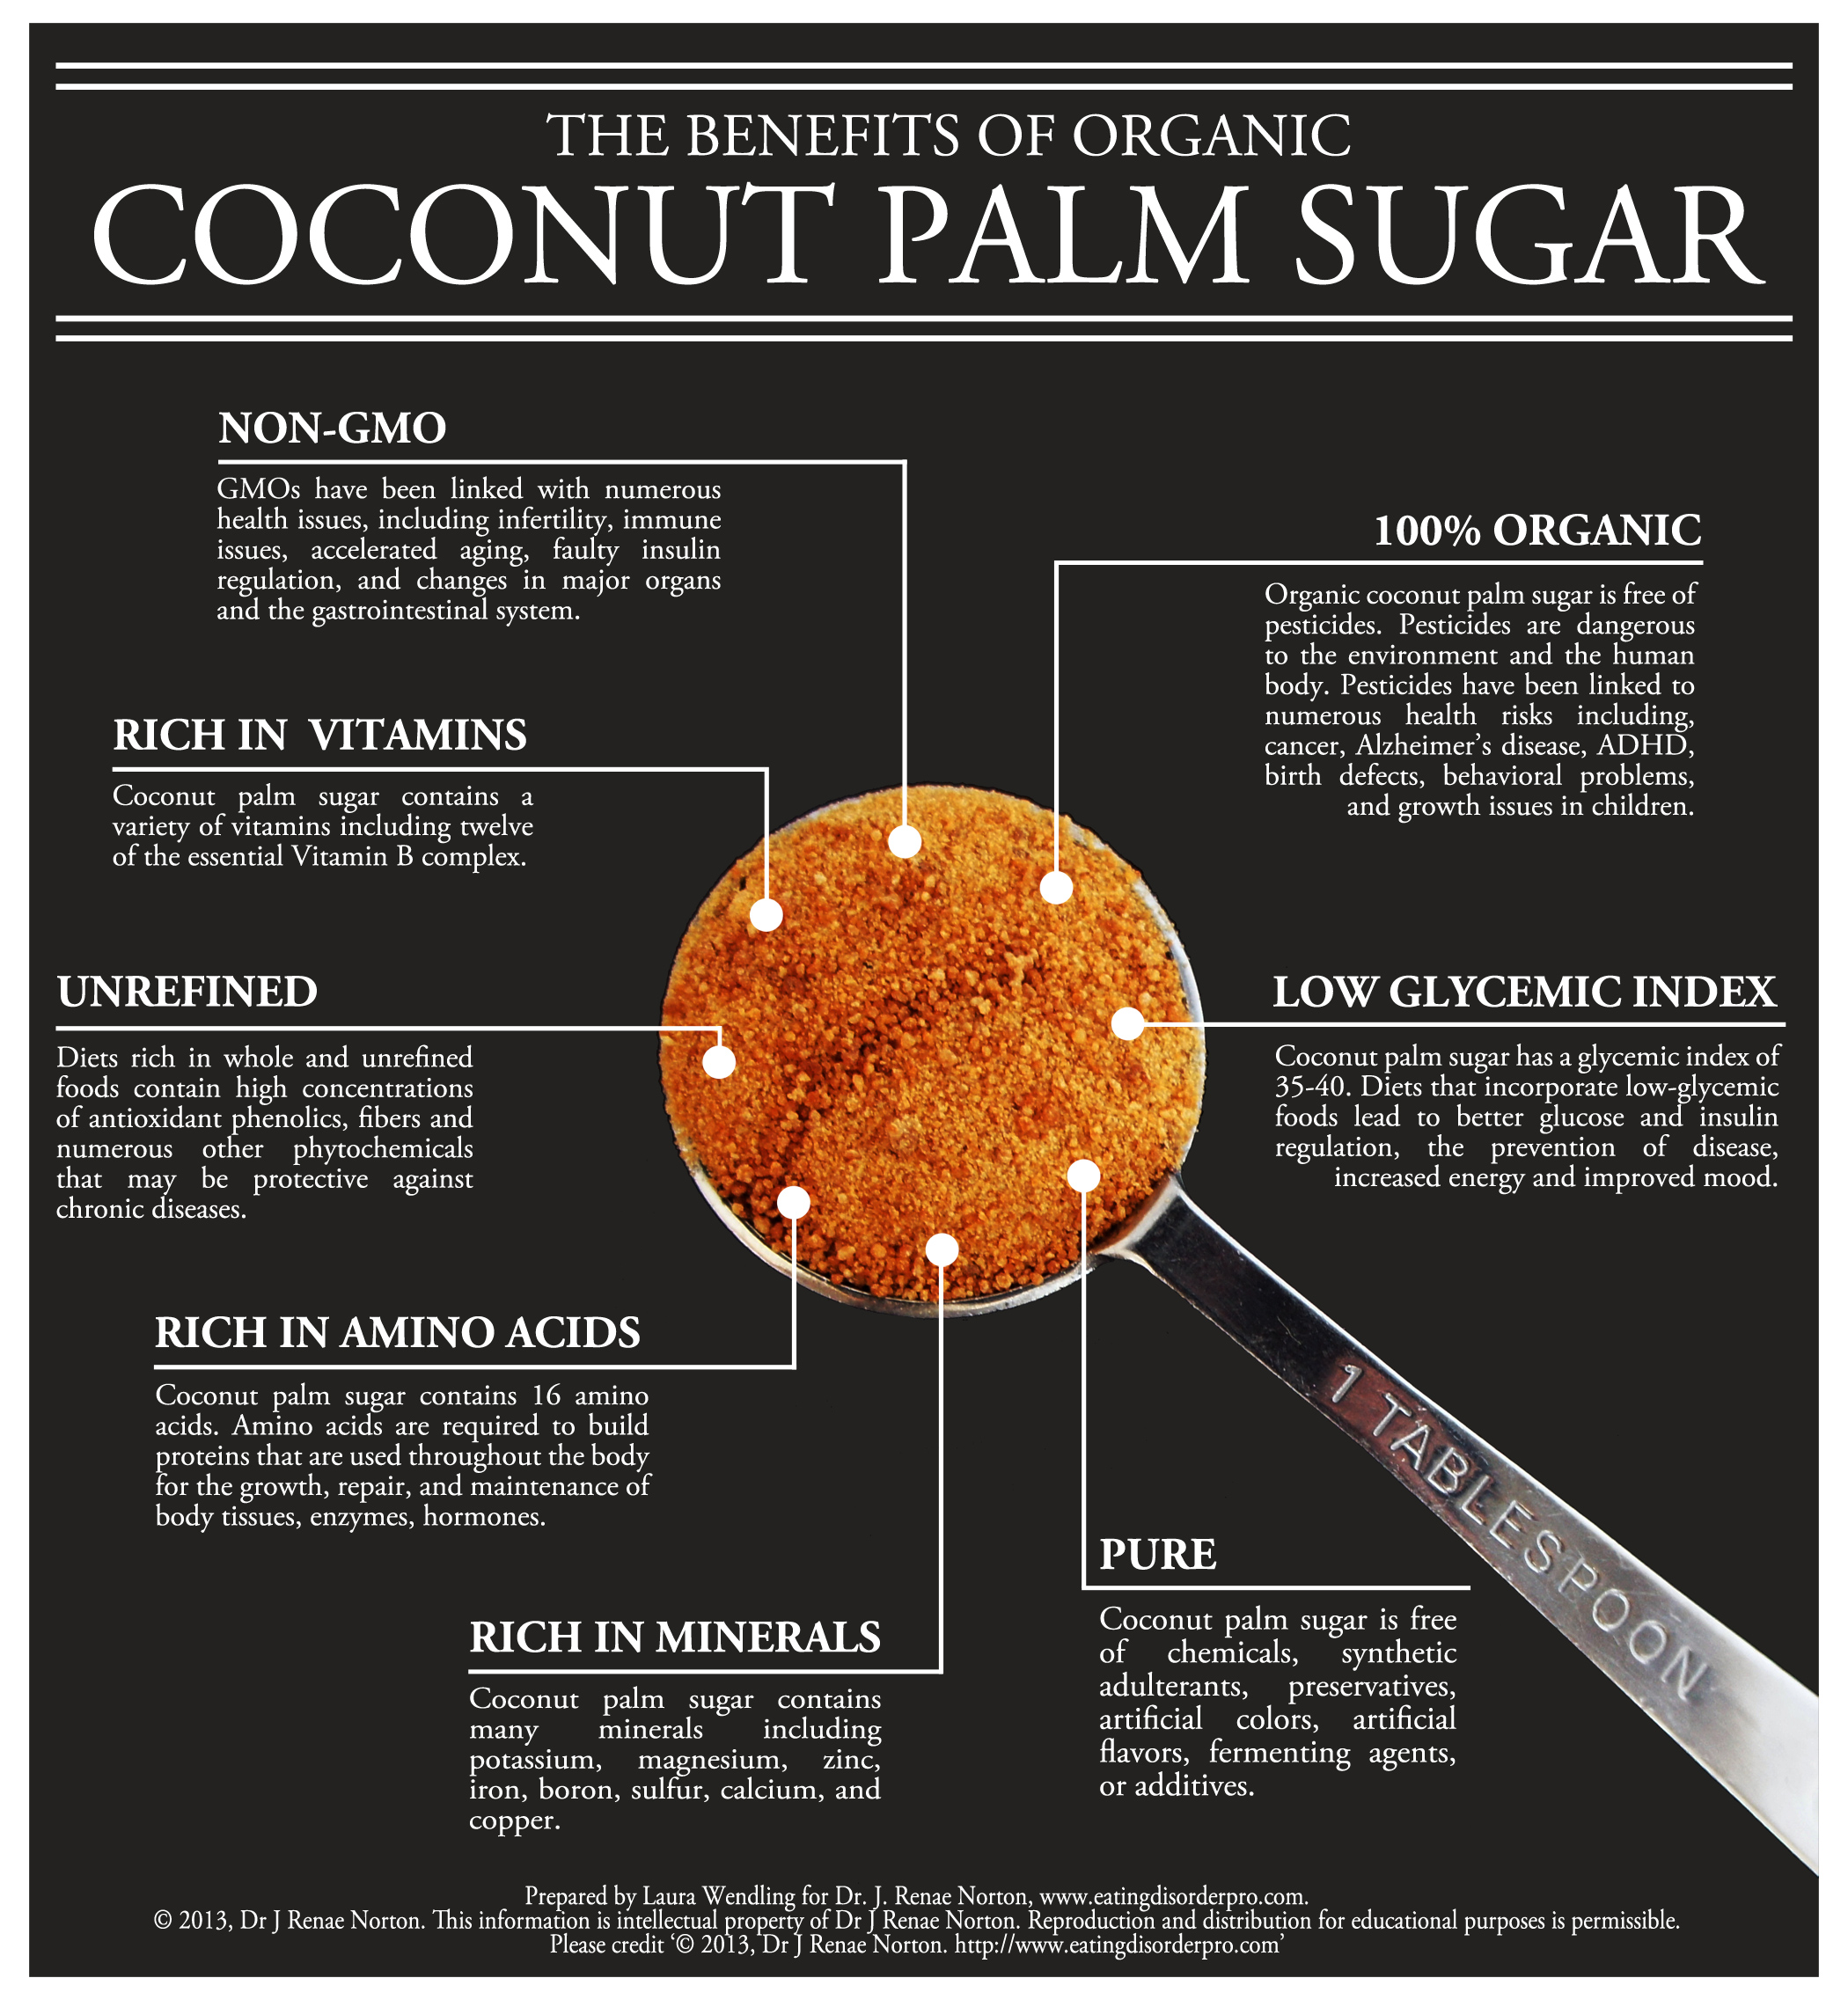 Could This Natural Sweetener Be A Healthy Alternative To Refined Sugar? Infographic